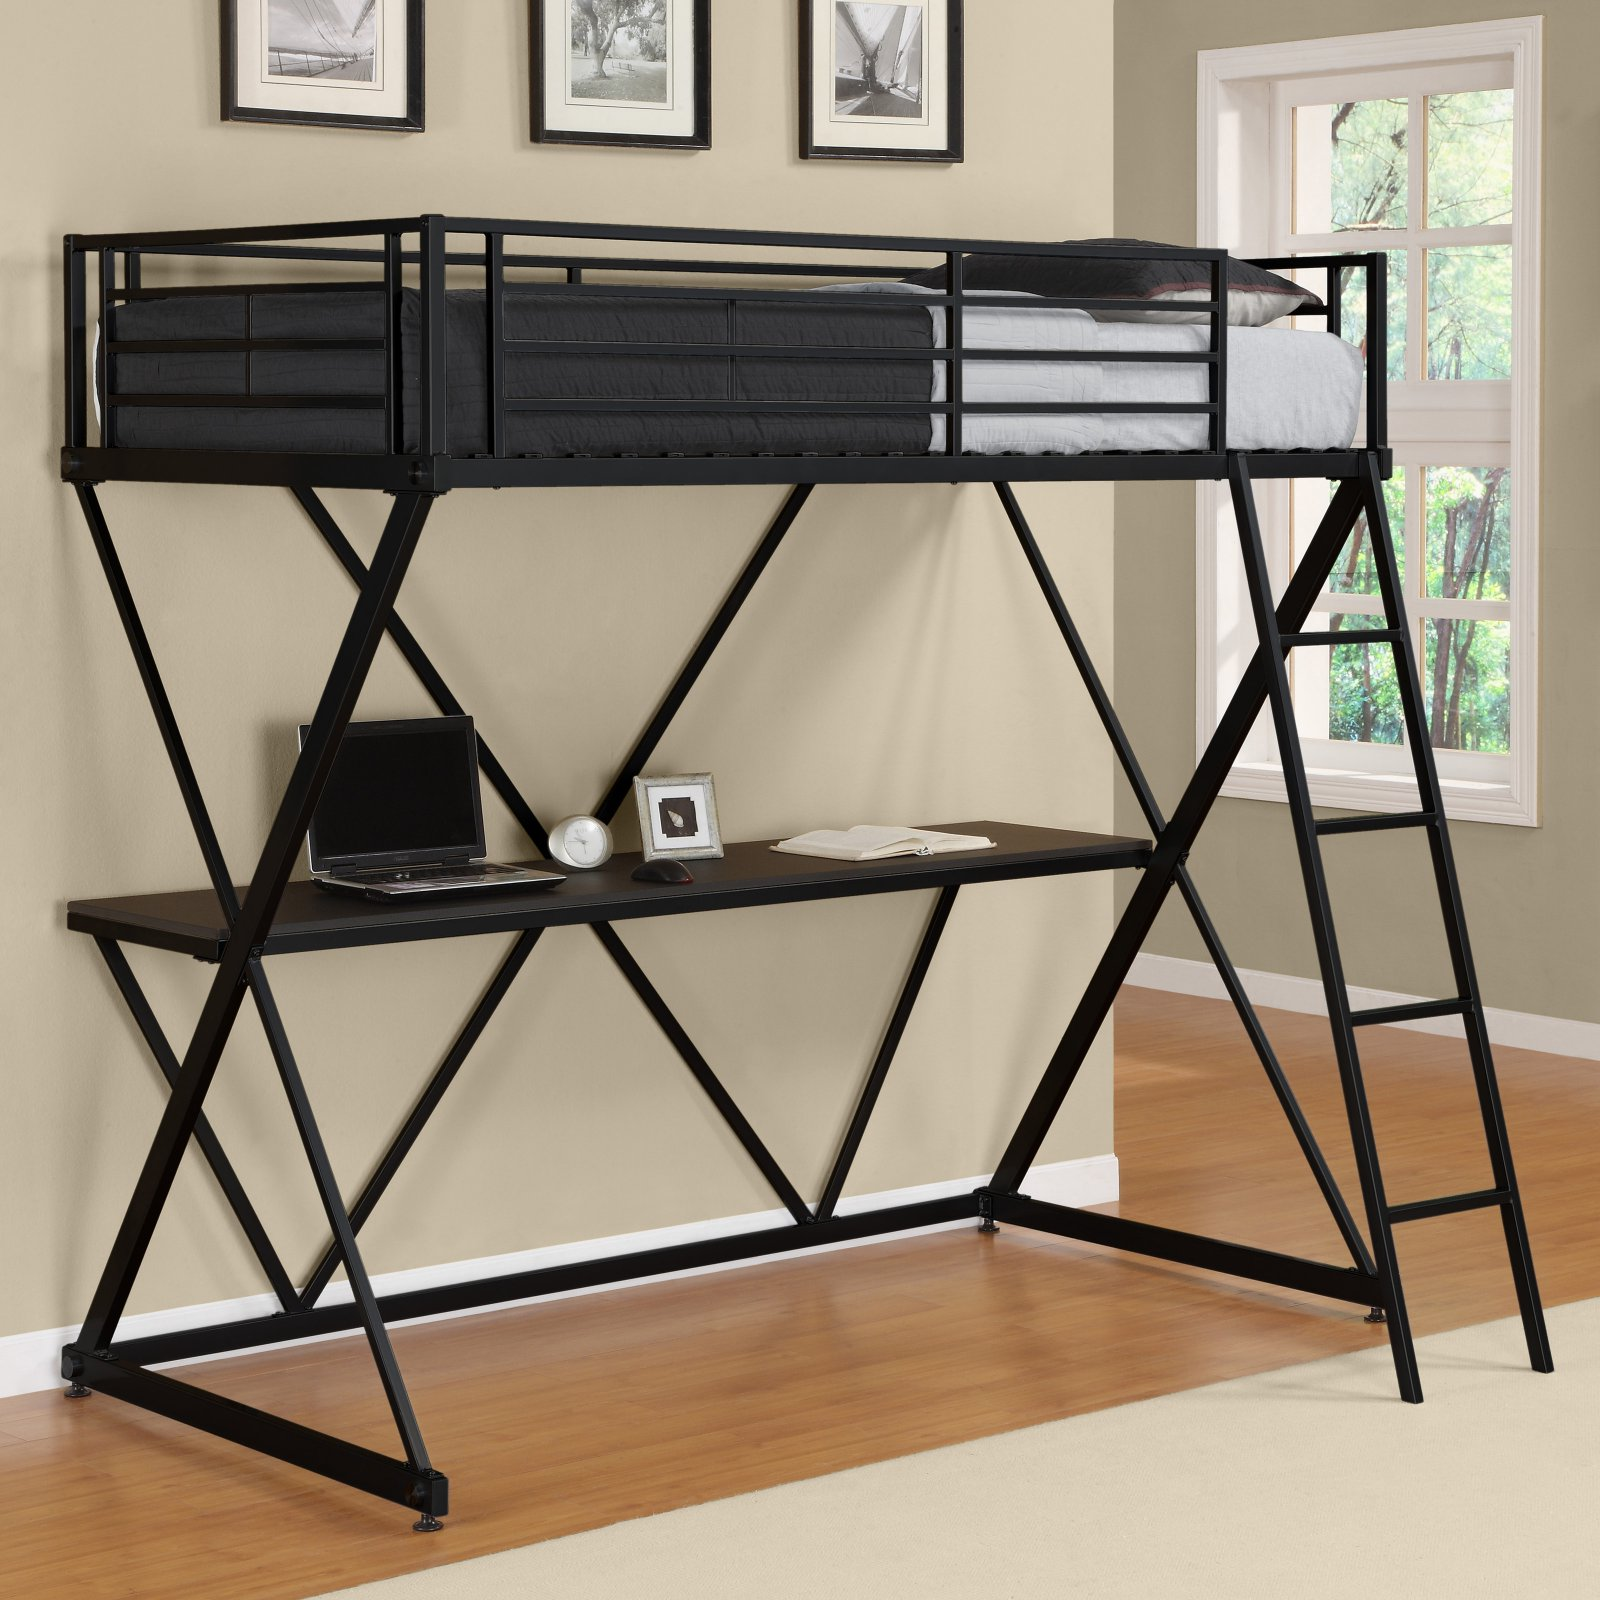 bunk bed with desk. DHP X Twin Metal Loft Bed Over Desk Workstation, Black Bunk With